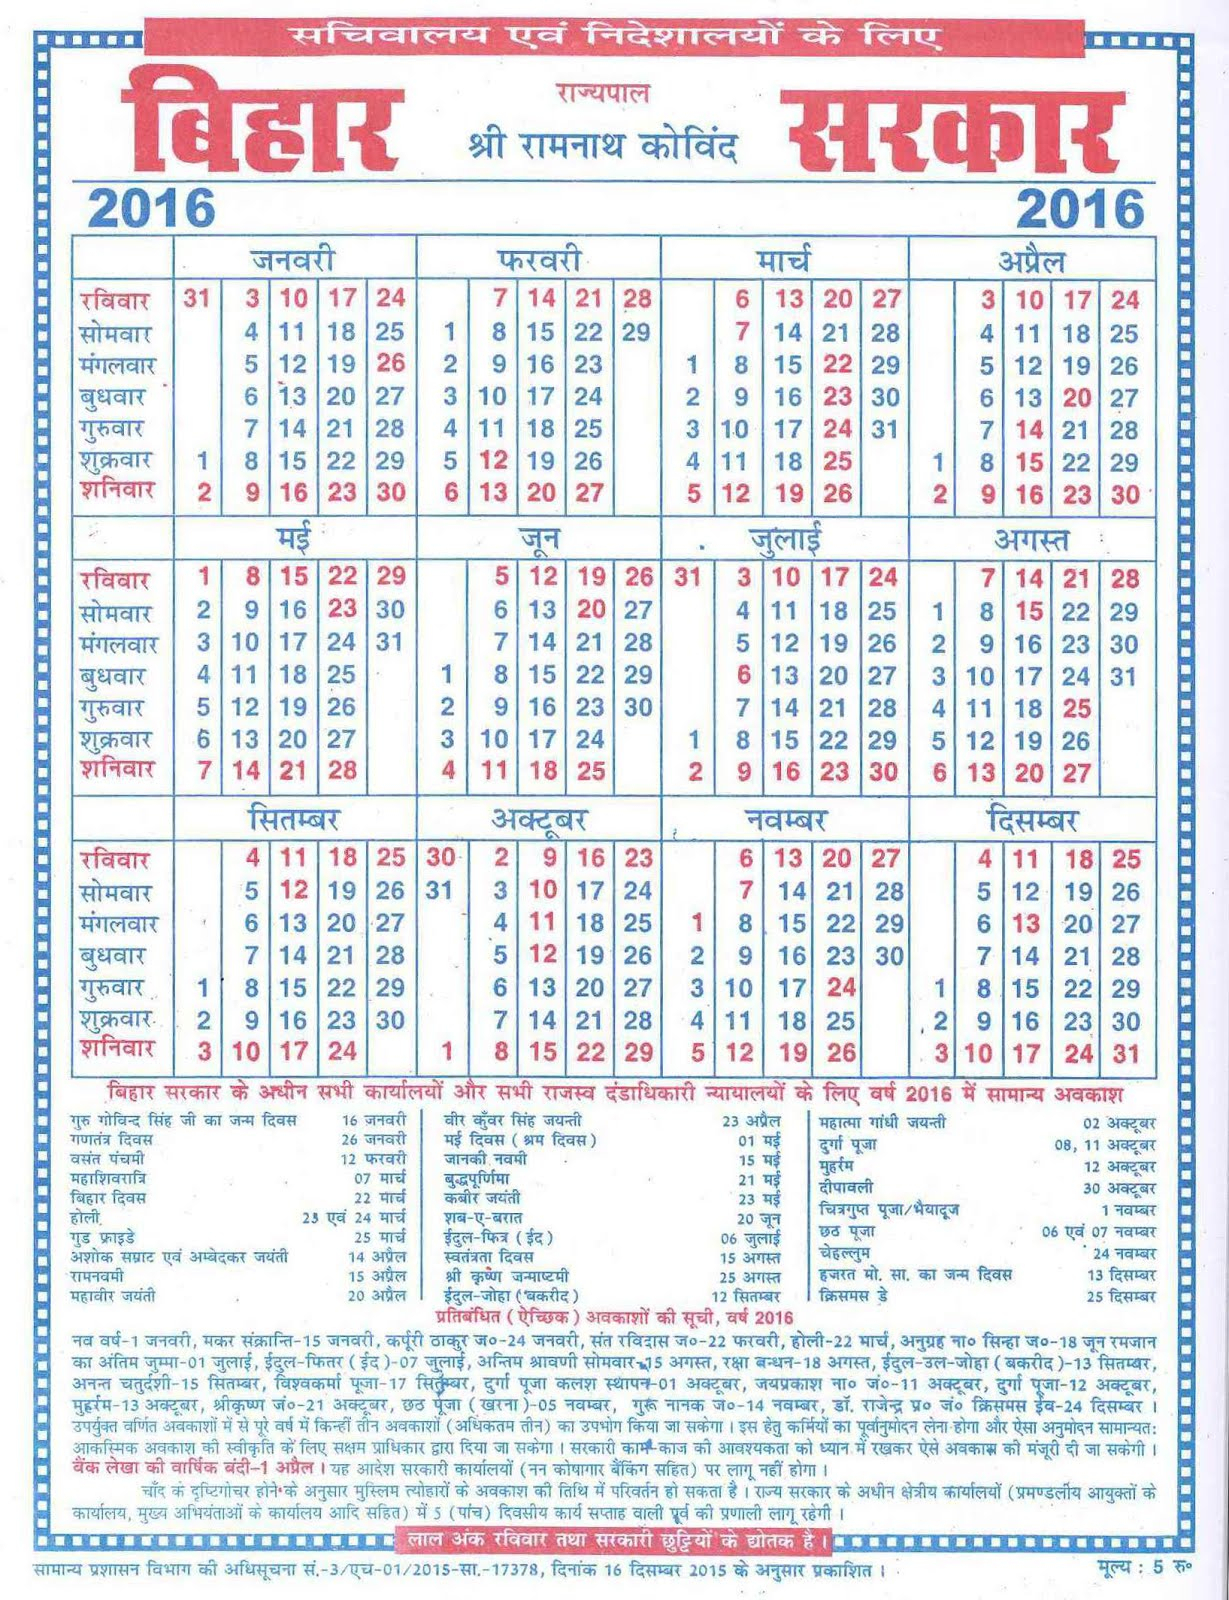 Bihar Government Calendar 2016 Download in Bihar Sarkar Calender